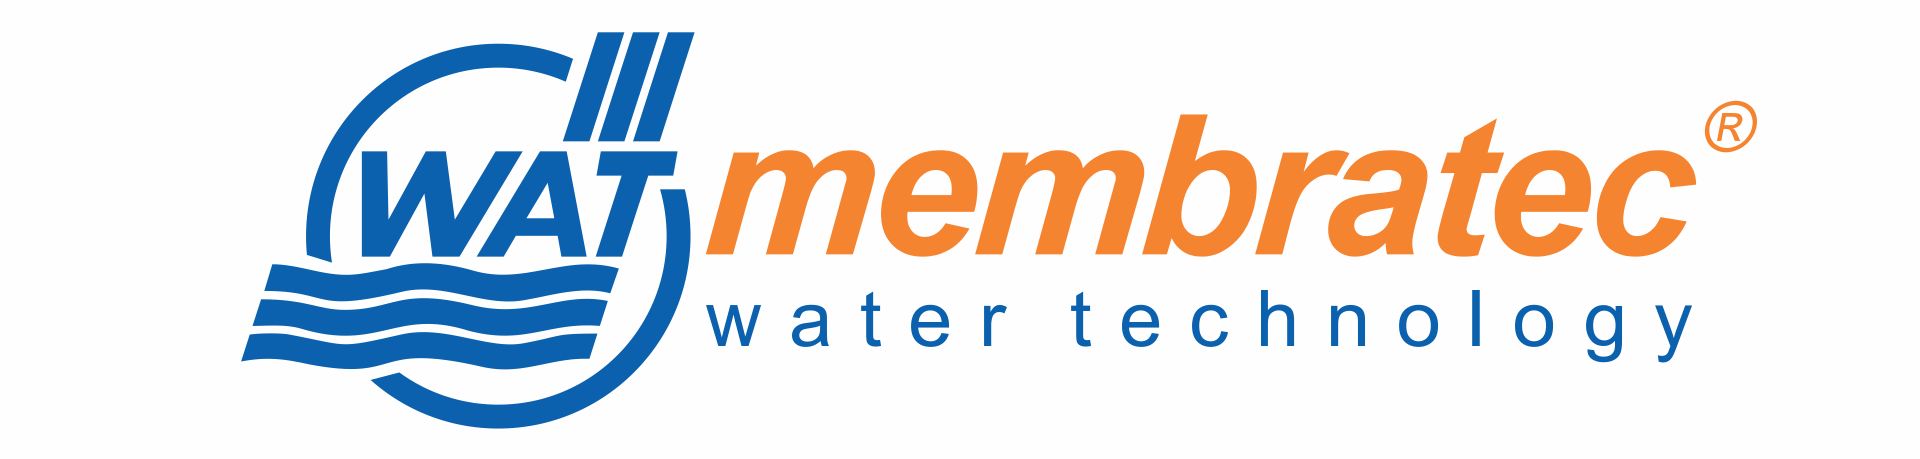 WAT-membratec water technology